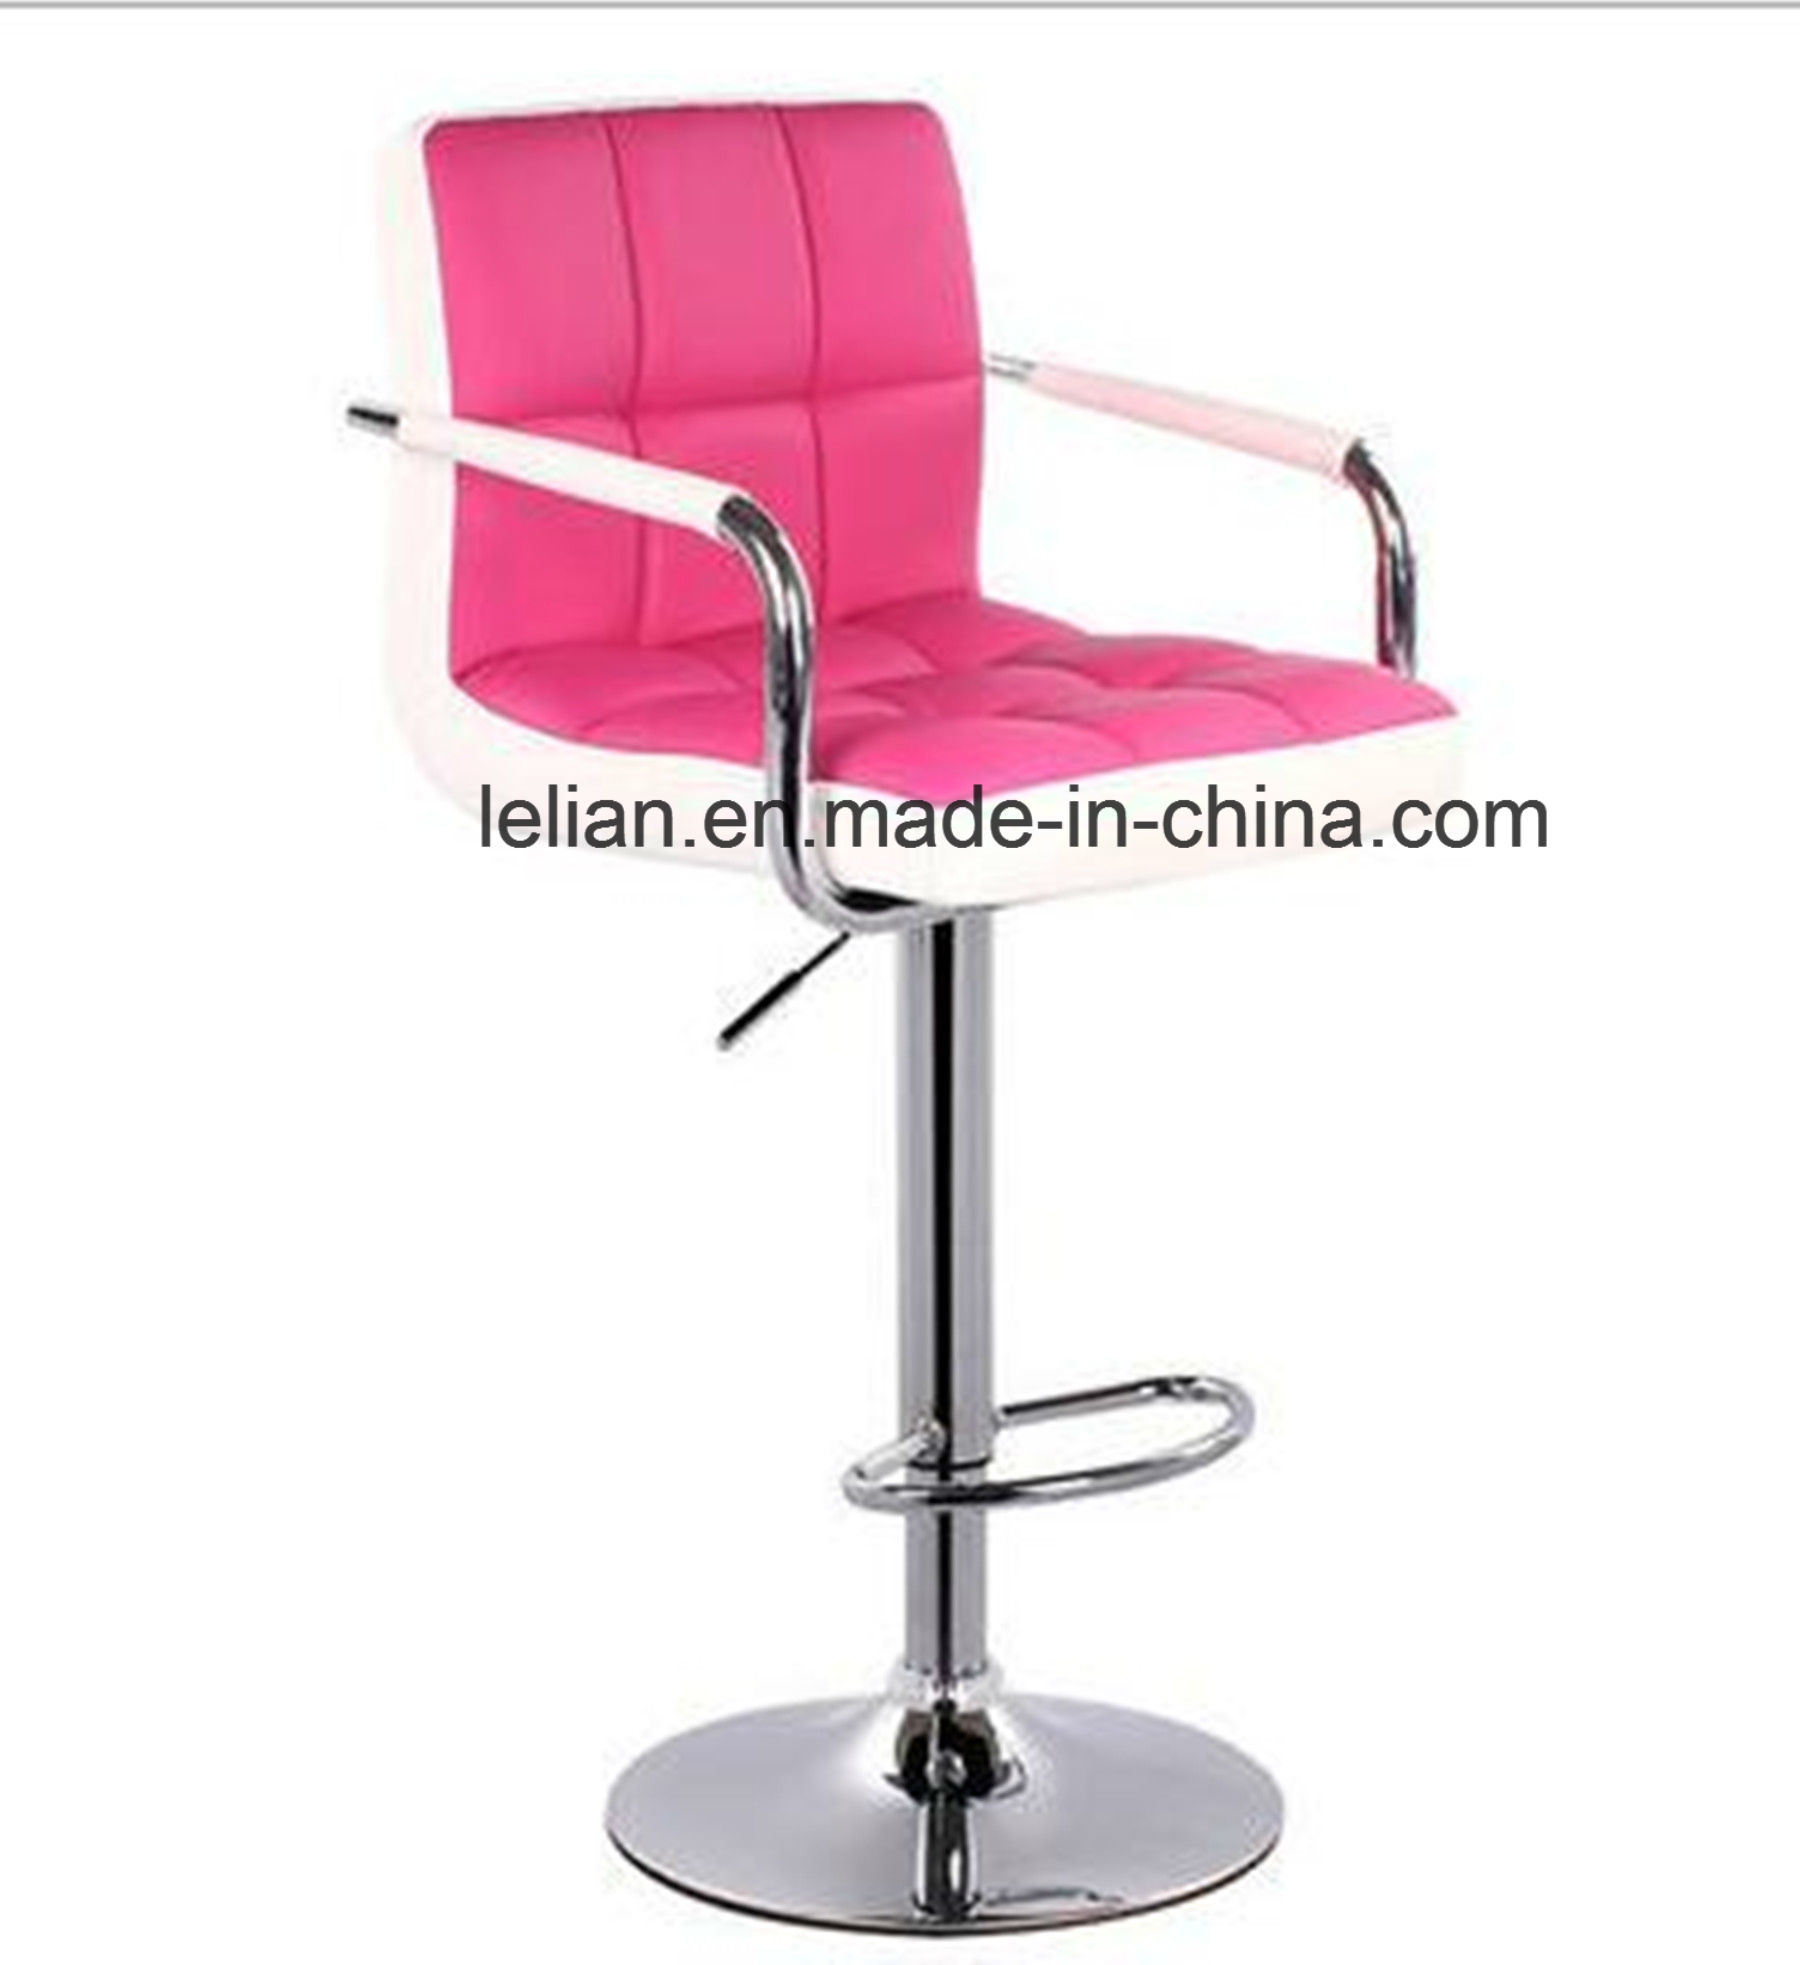 Office Ajustable Swivel PU Chair with High Density Sponge Inside (LL-BC041) pictures & photos